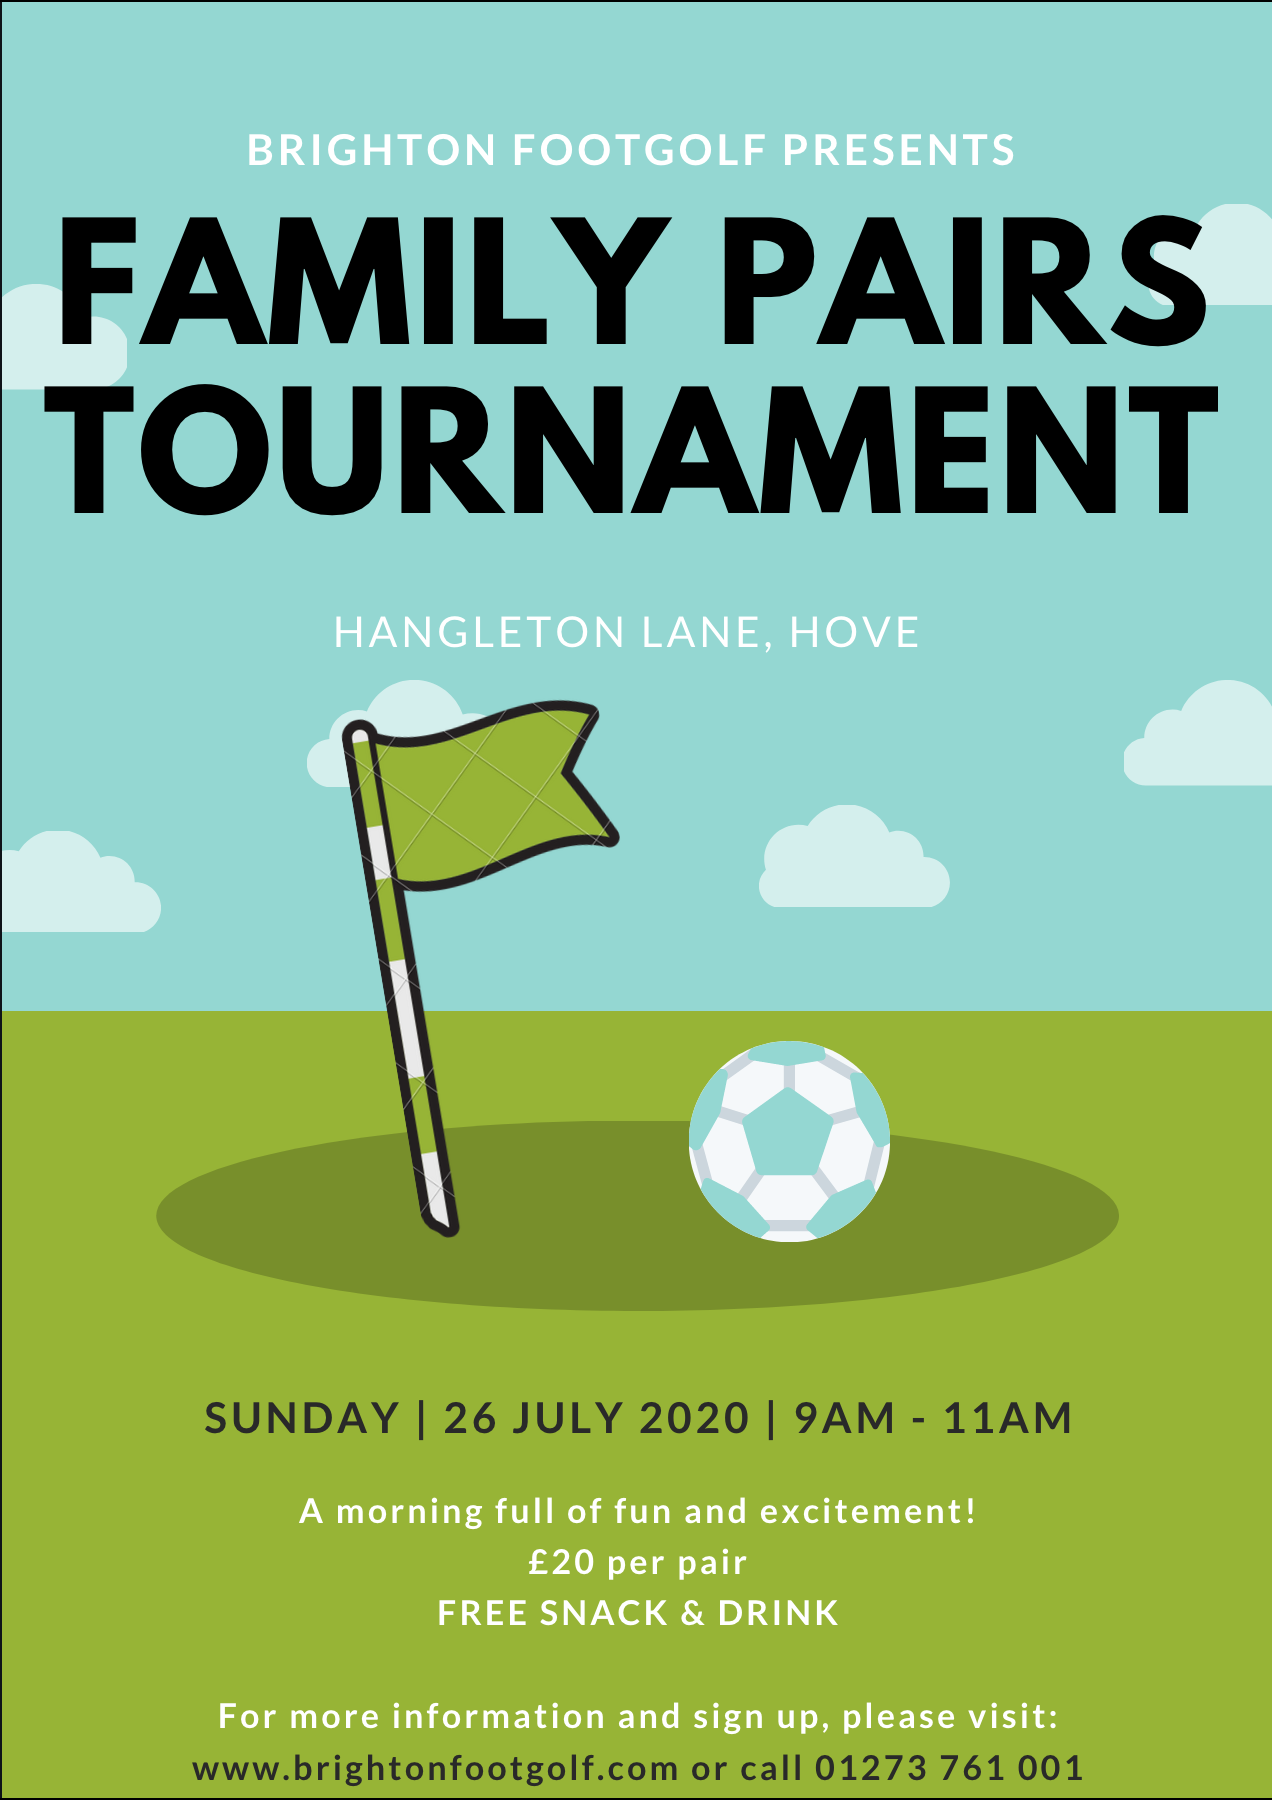 Brighton Footgolf Family Pairs Tournament